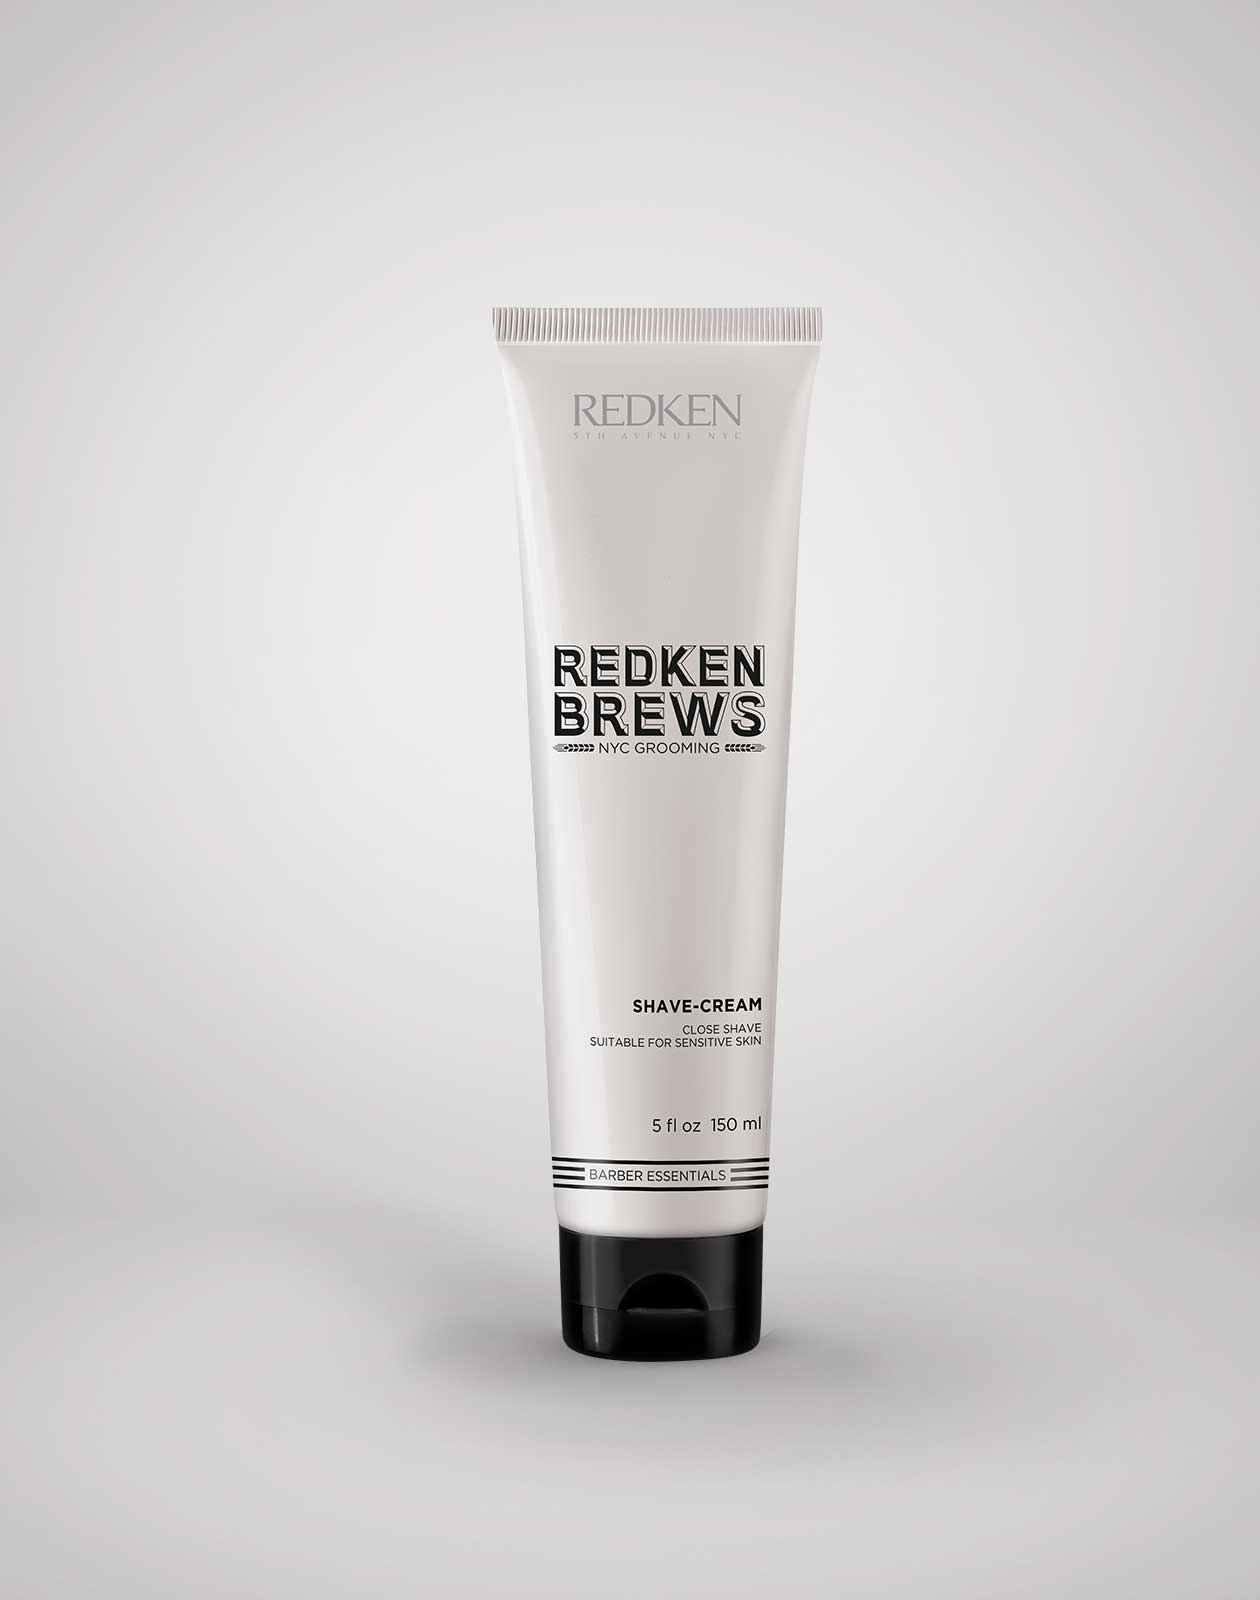 Redken Brews Shaving Cream